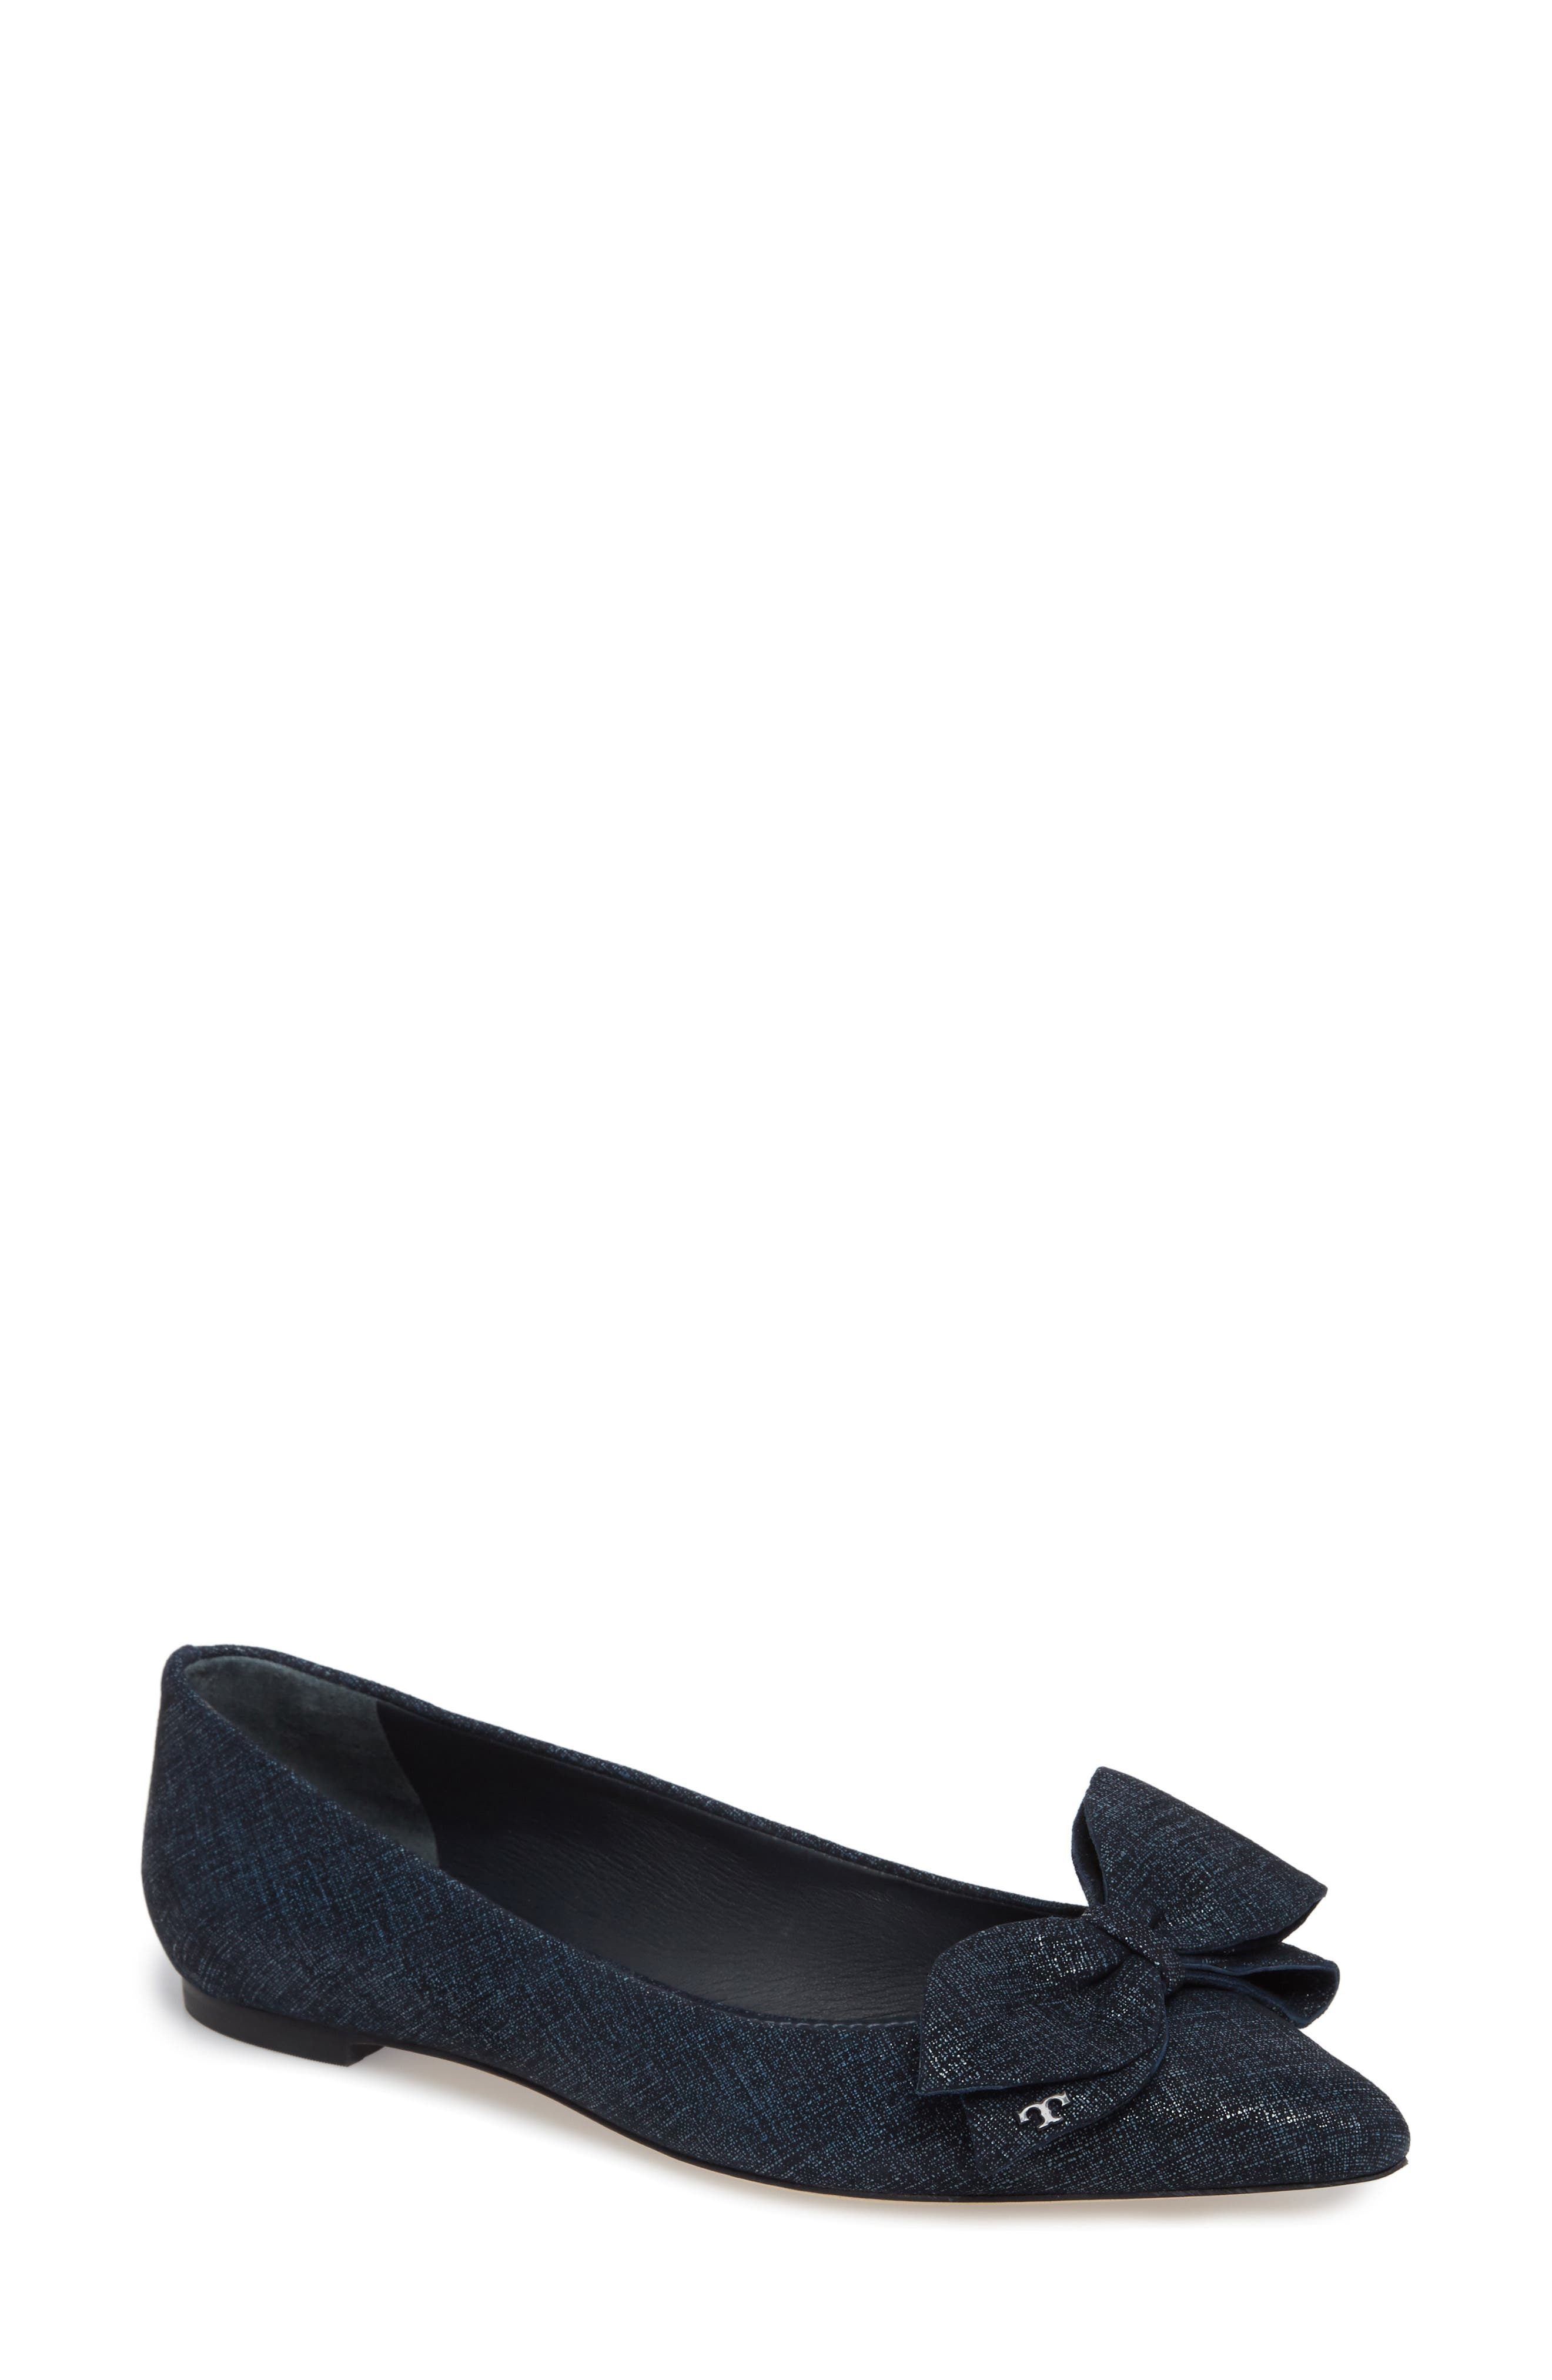 Main Image - Tory Burch Rosalind Bow Pointy Toe Flat (Women)